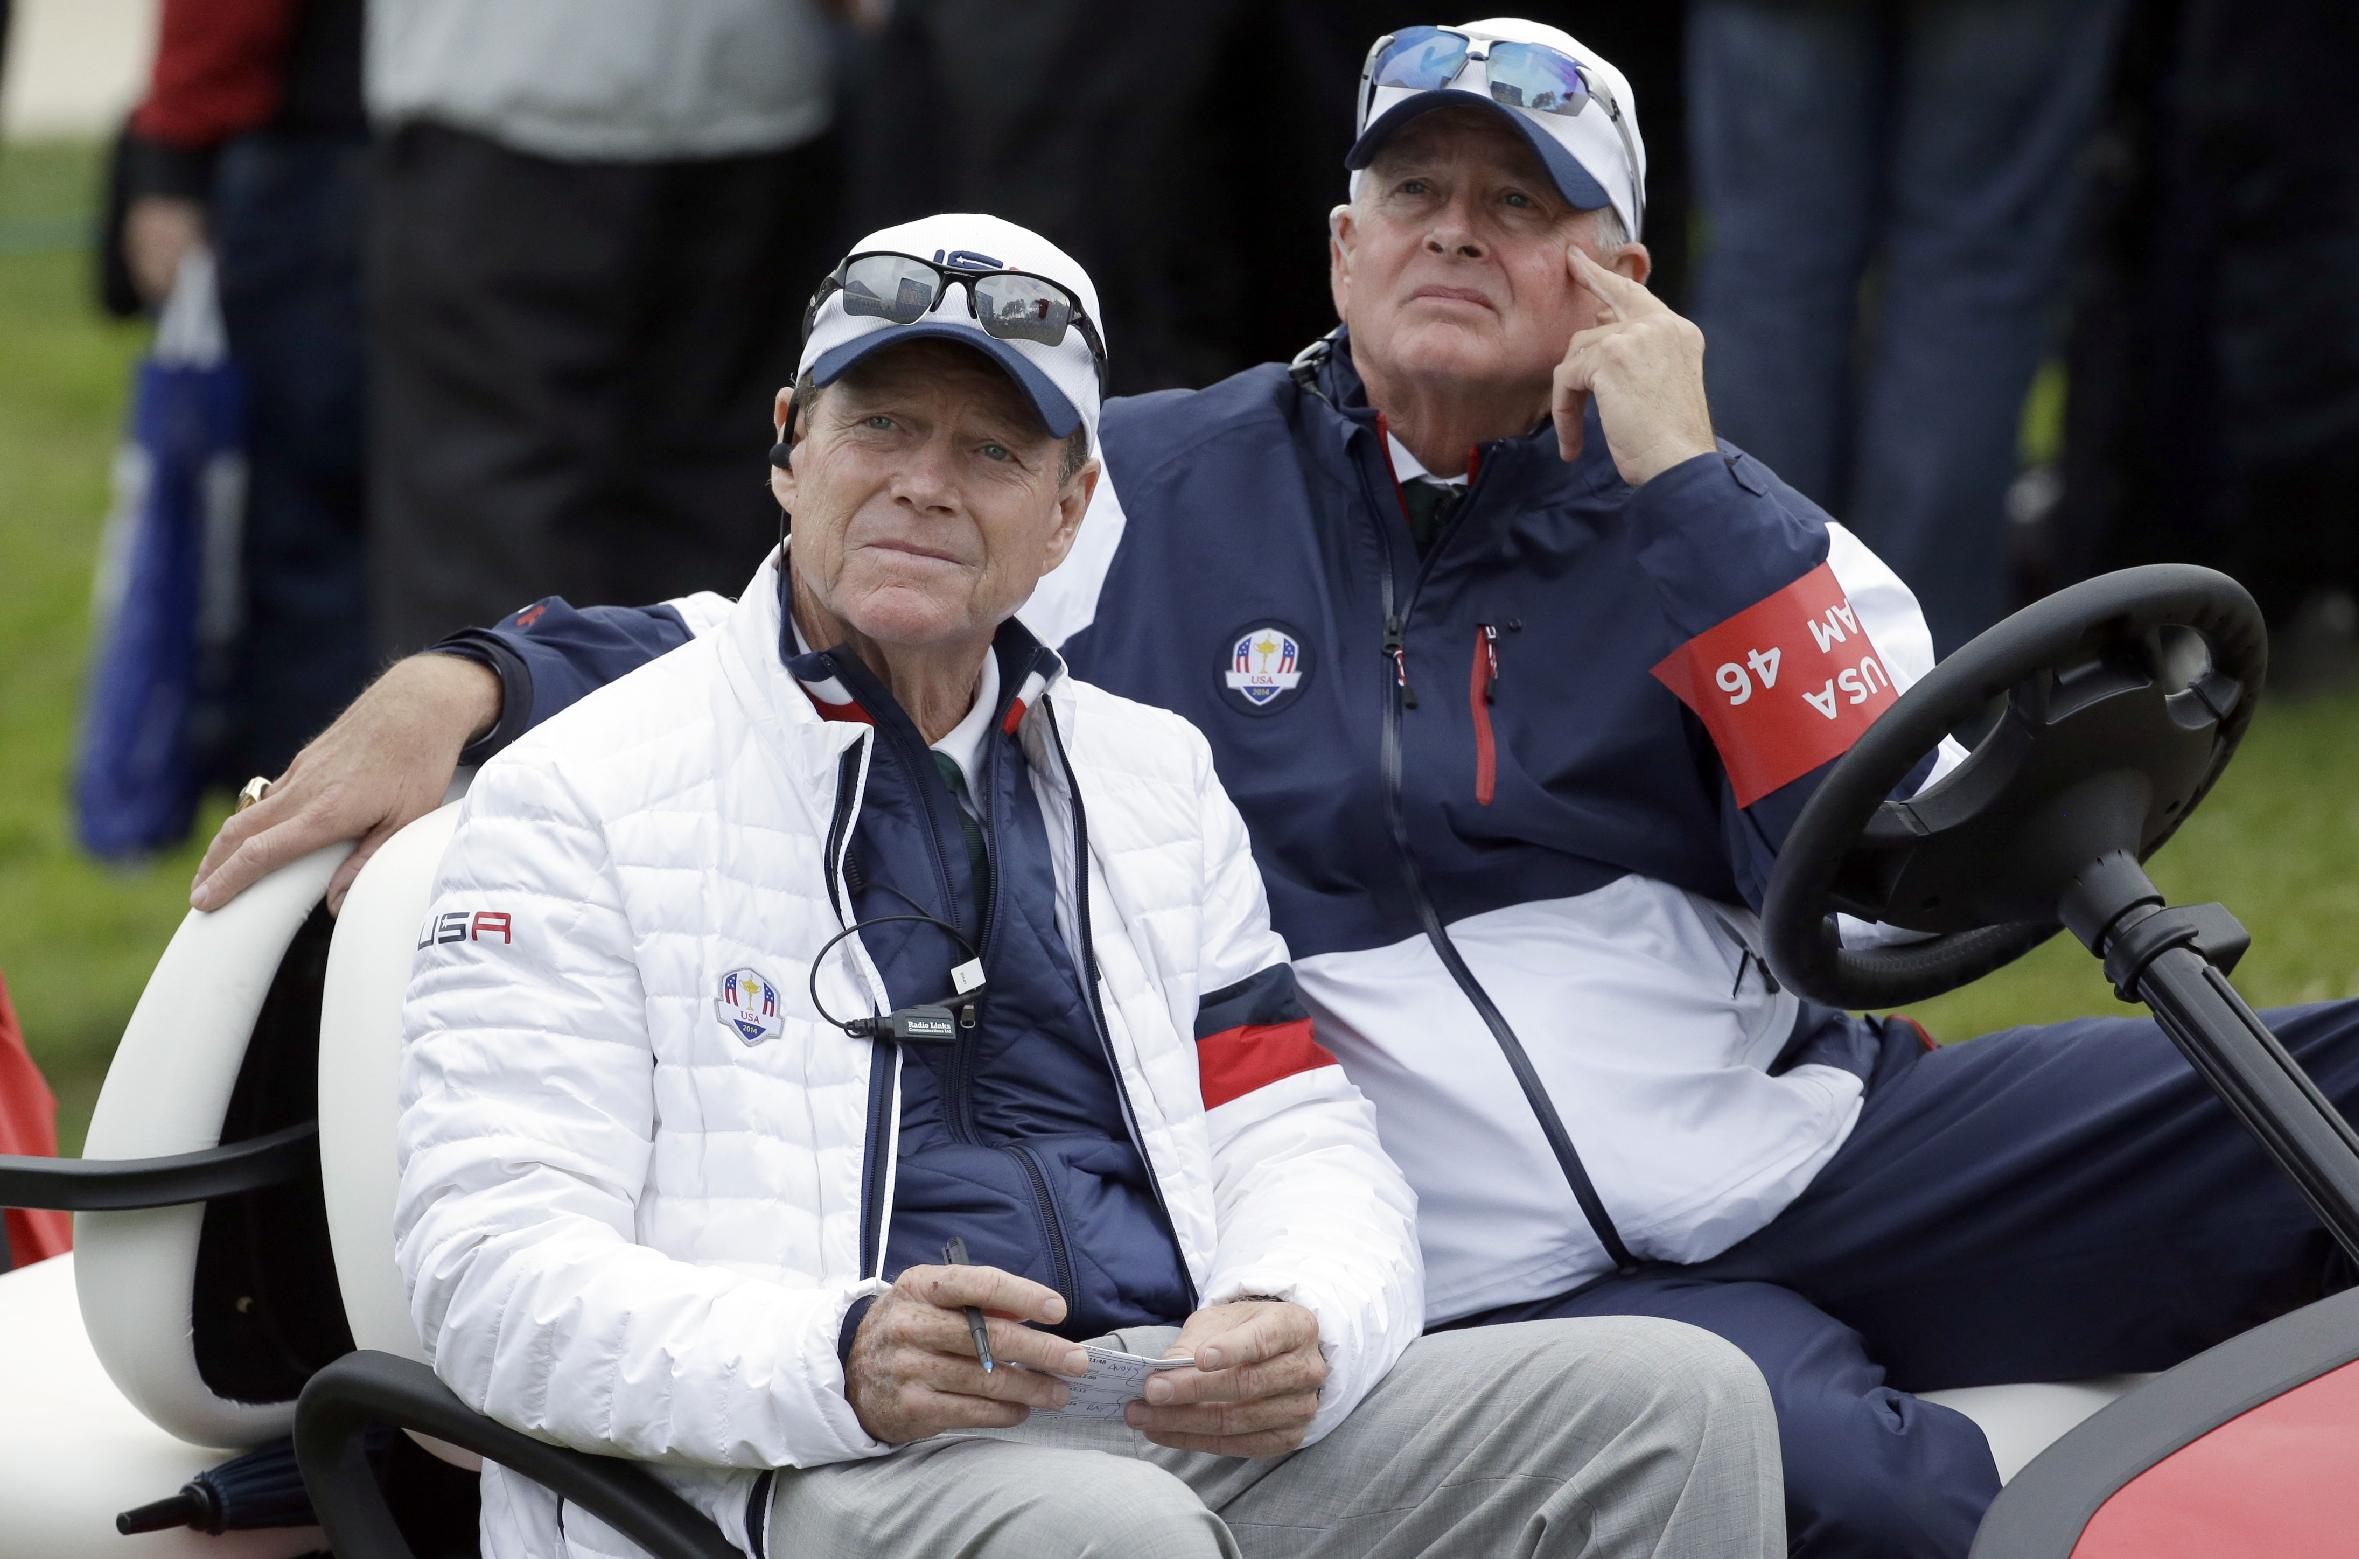 US team captain Tom Watson, left, sits in a buggy and looks at the scoreboard near the 11th hole during the singles match on the final day of the Ryder Cup golf tournament at Gleneagles, Scotland, Sunday, Sept. 28, 2014. Unidentified man at right. (AP Photo/Matt Dunham)